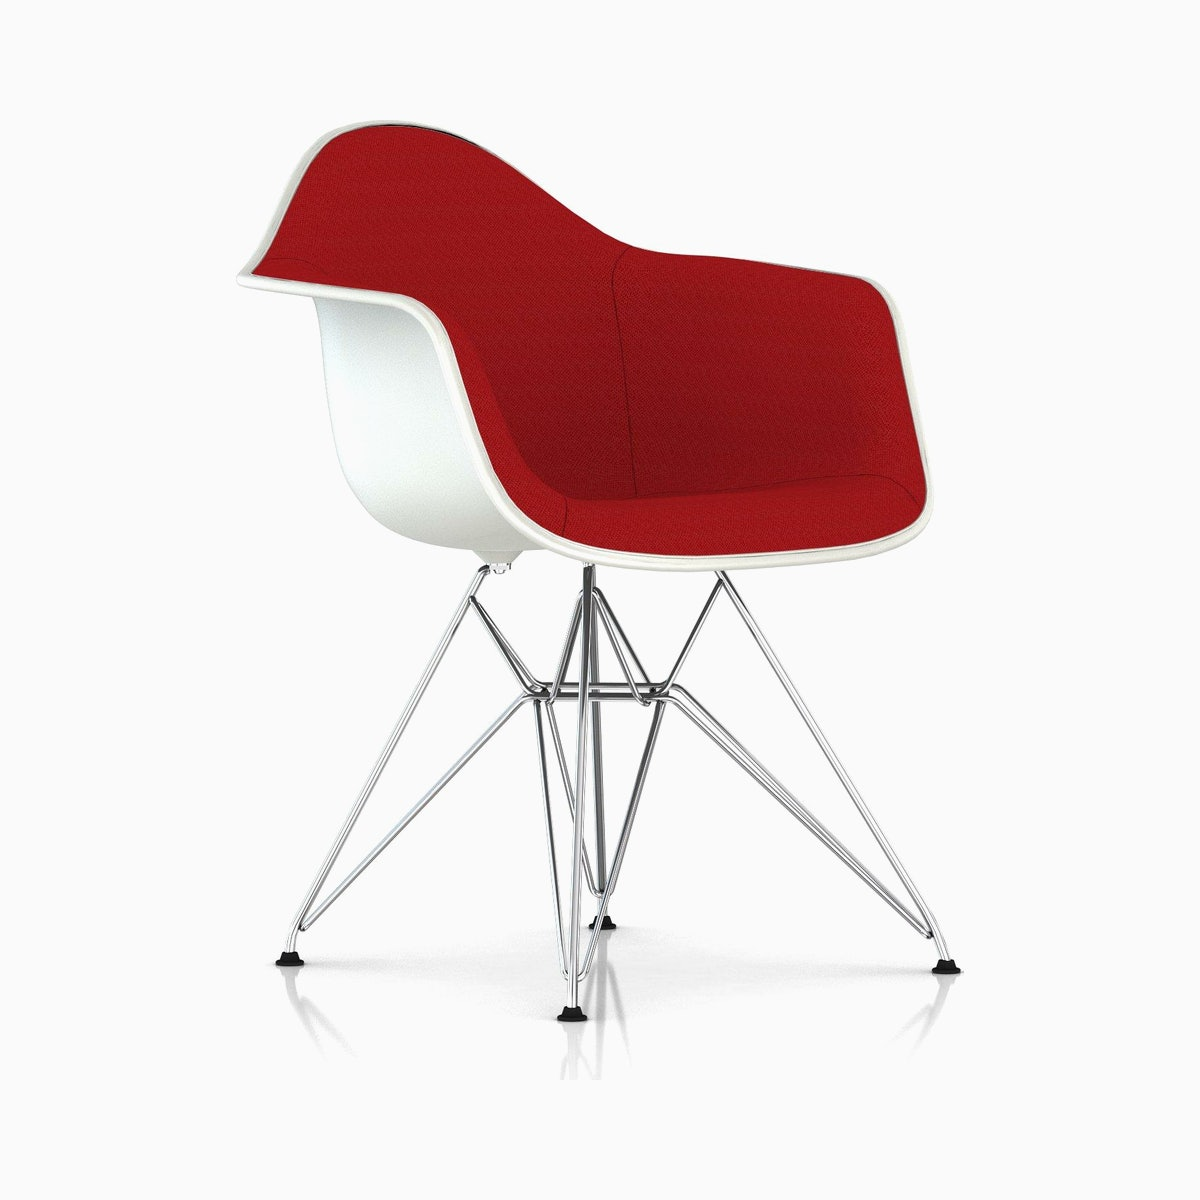 Eames Upholstered Molded Plastic Armchair